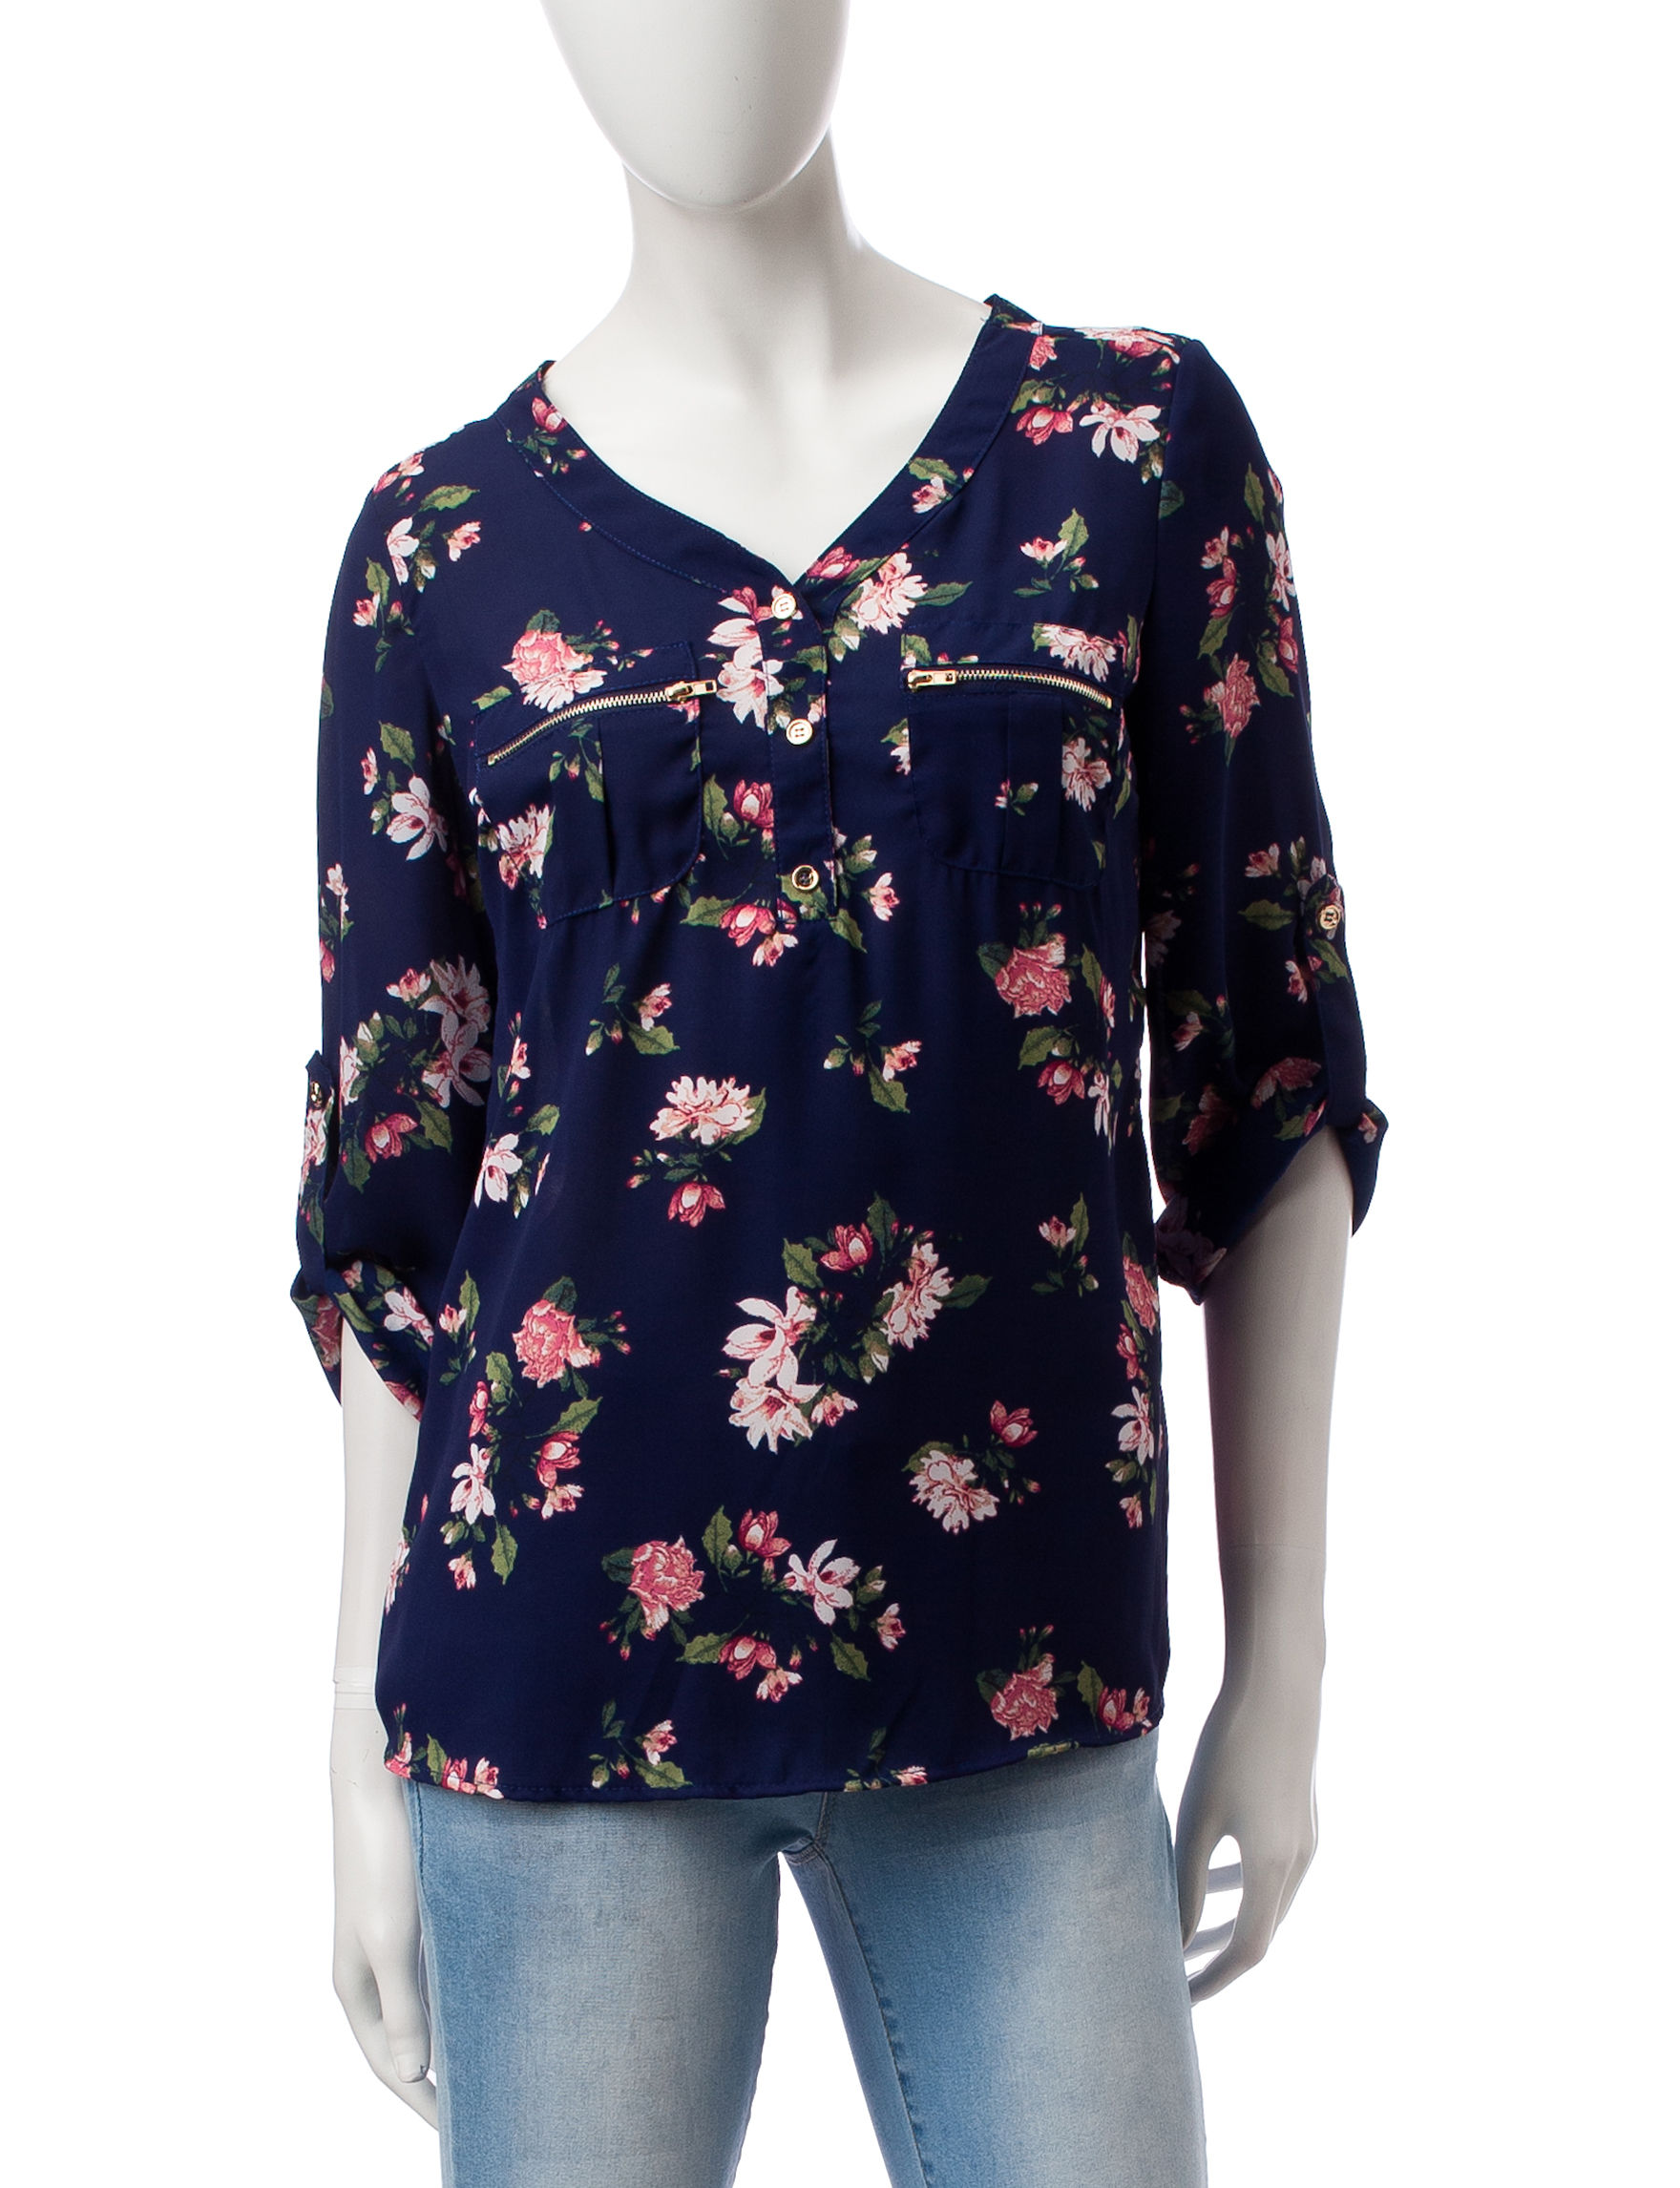 Wishful Park Blue Floral Shirts & Blouses